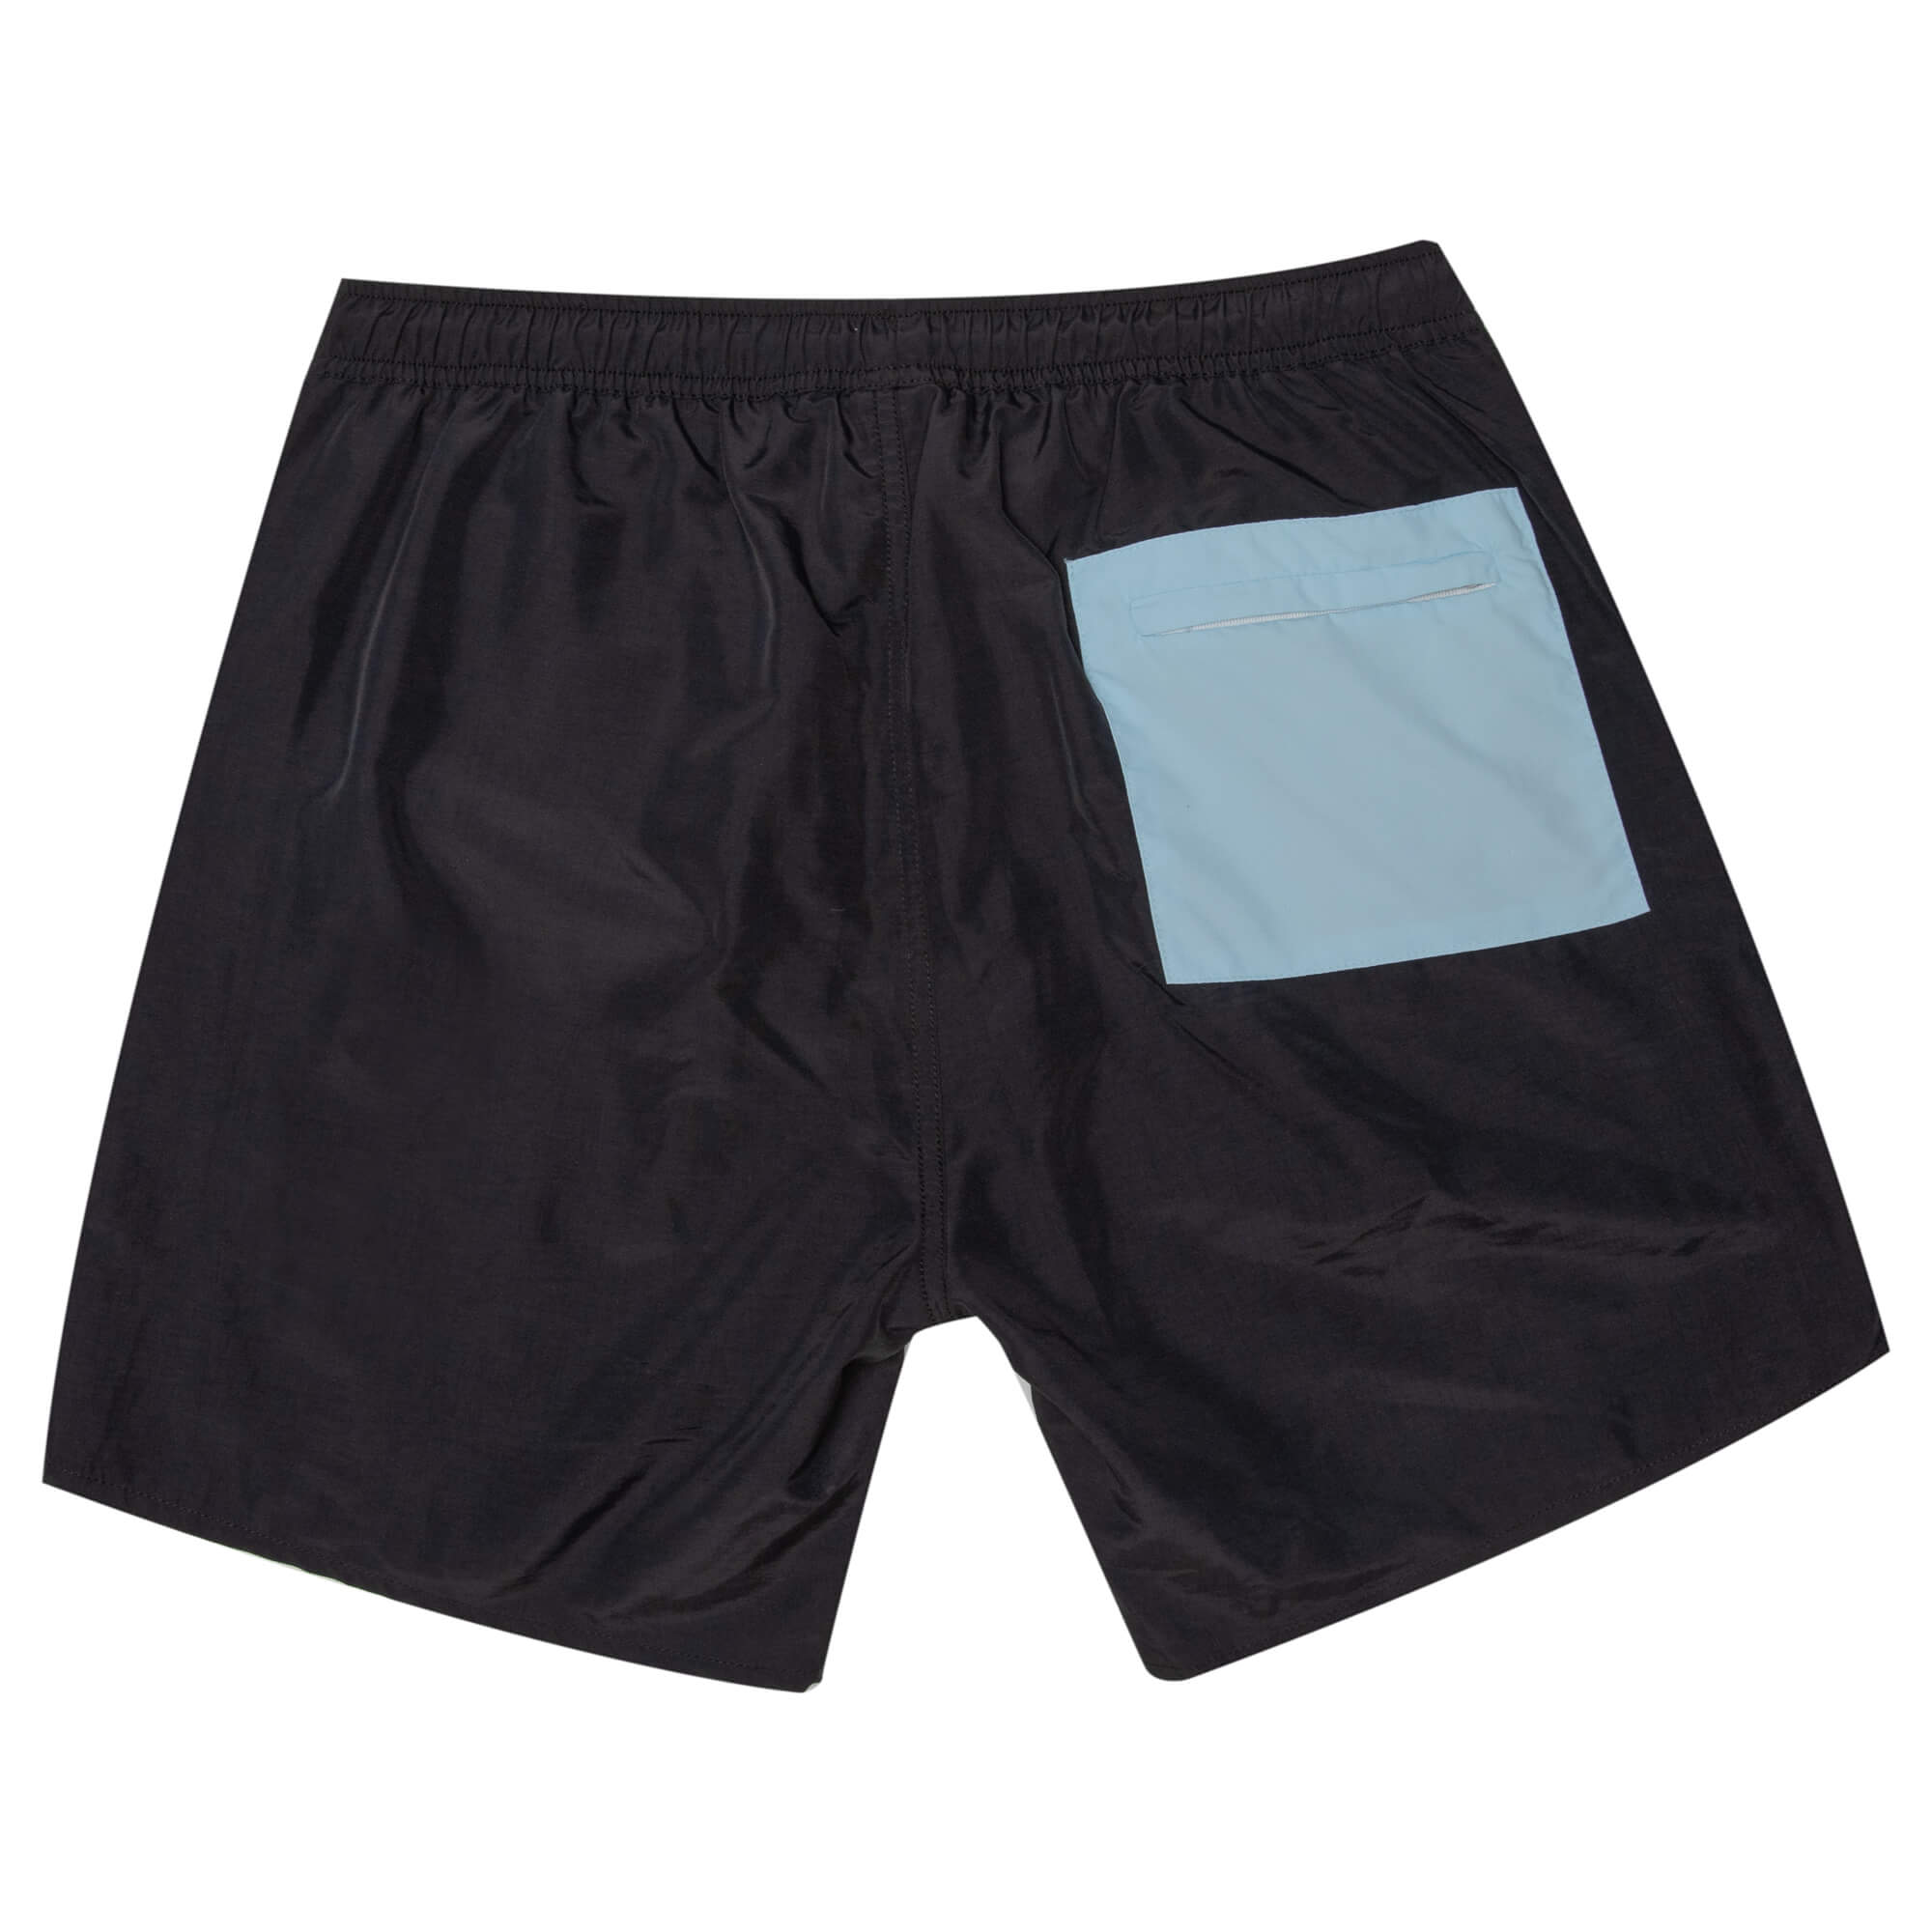 back view of the twilight nylon shorts which are black with a blue pocket on the back